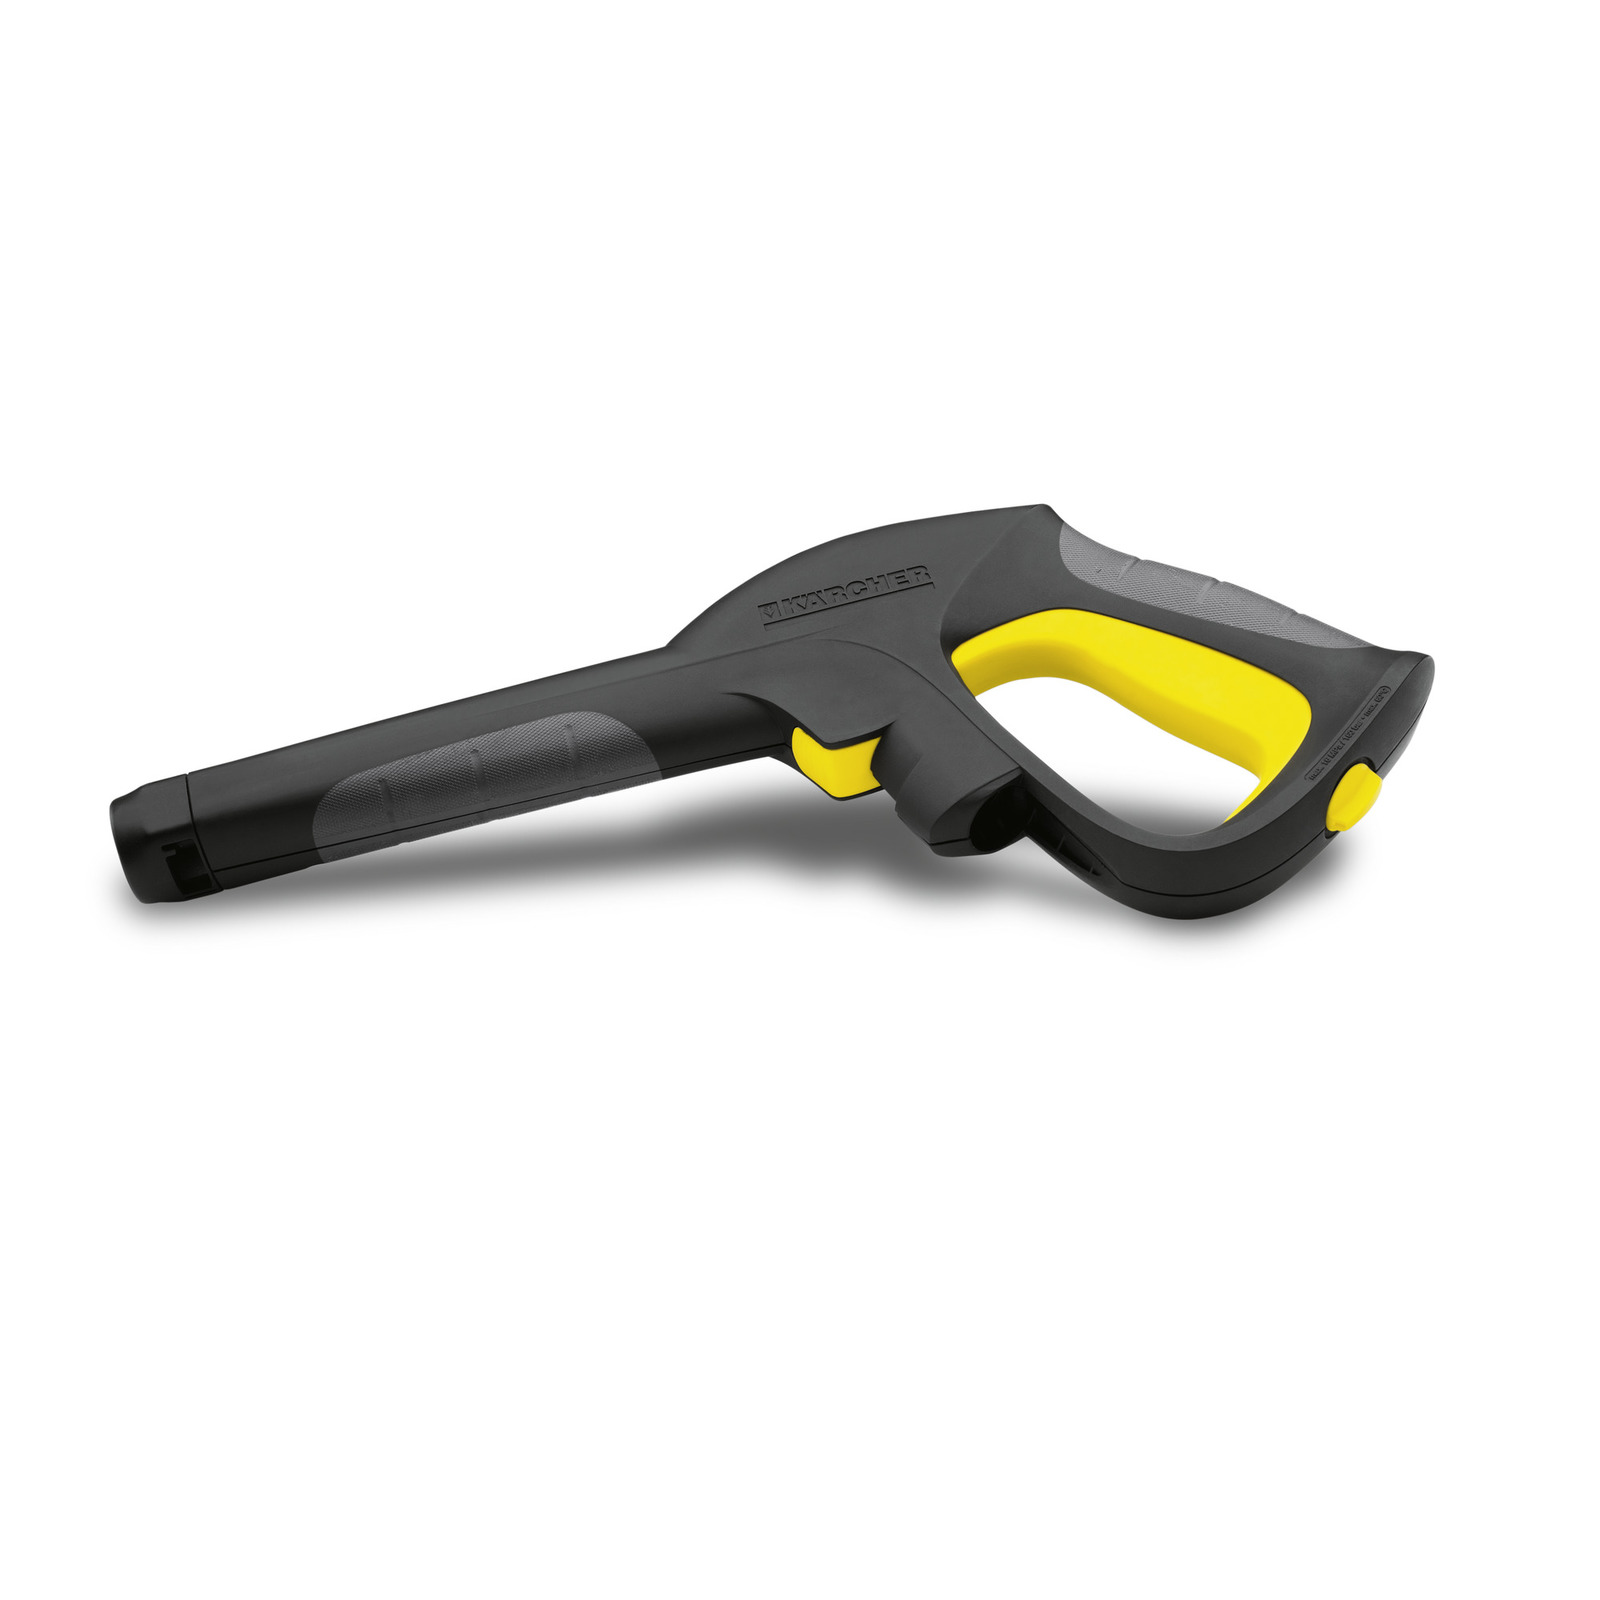 PISTOLA G 160 QUICK CONNECT KARCHER